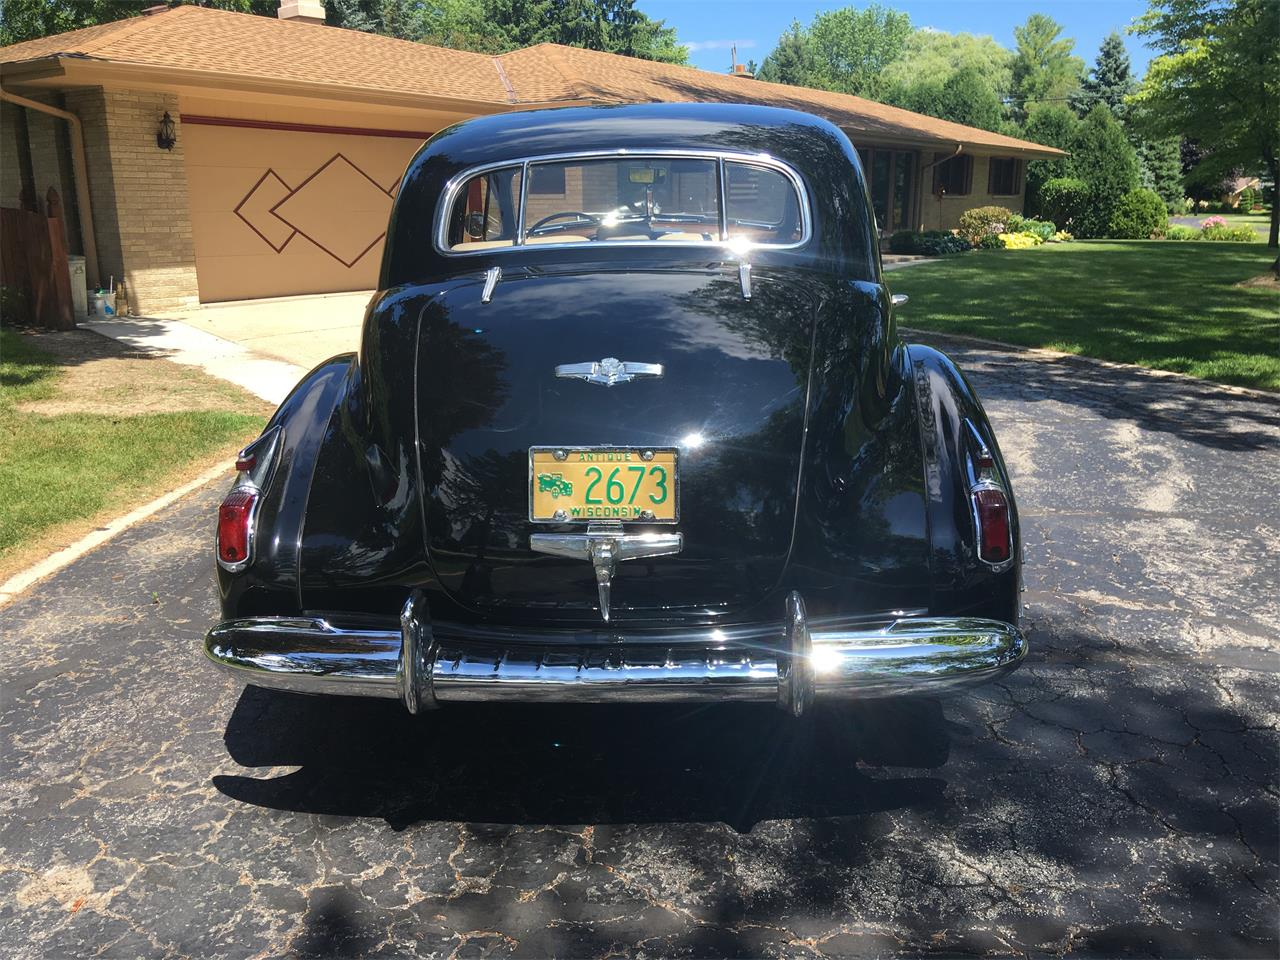 1941 Cadillac Series 62 (CC-1242283) for sale in Brown Deer, Wisconsin